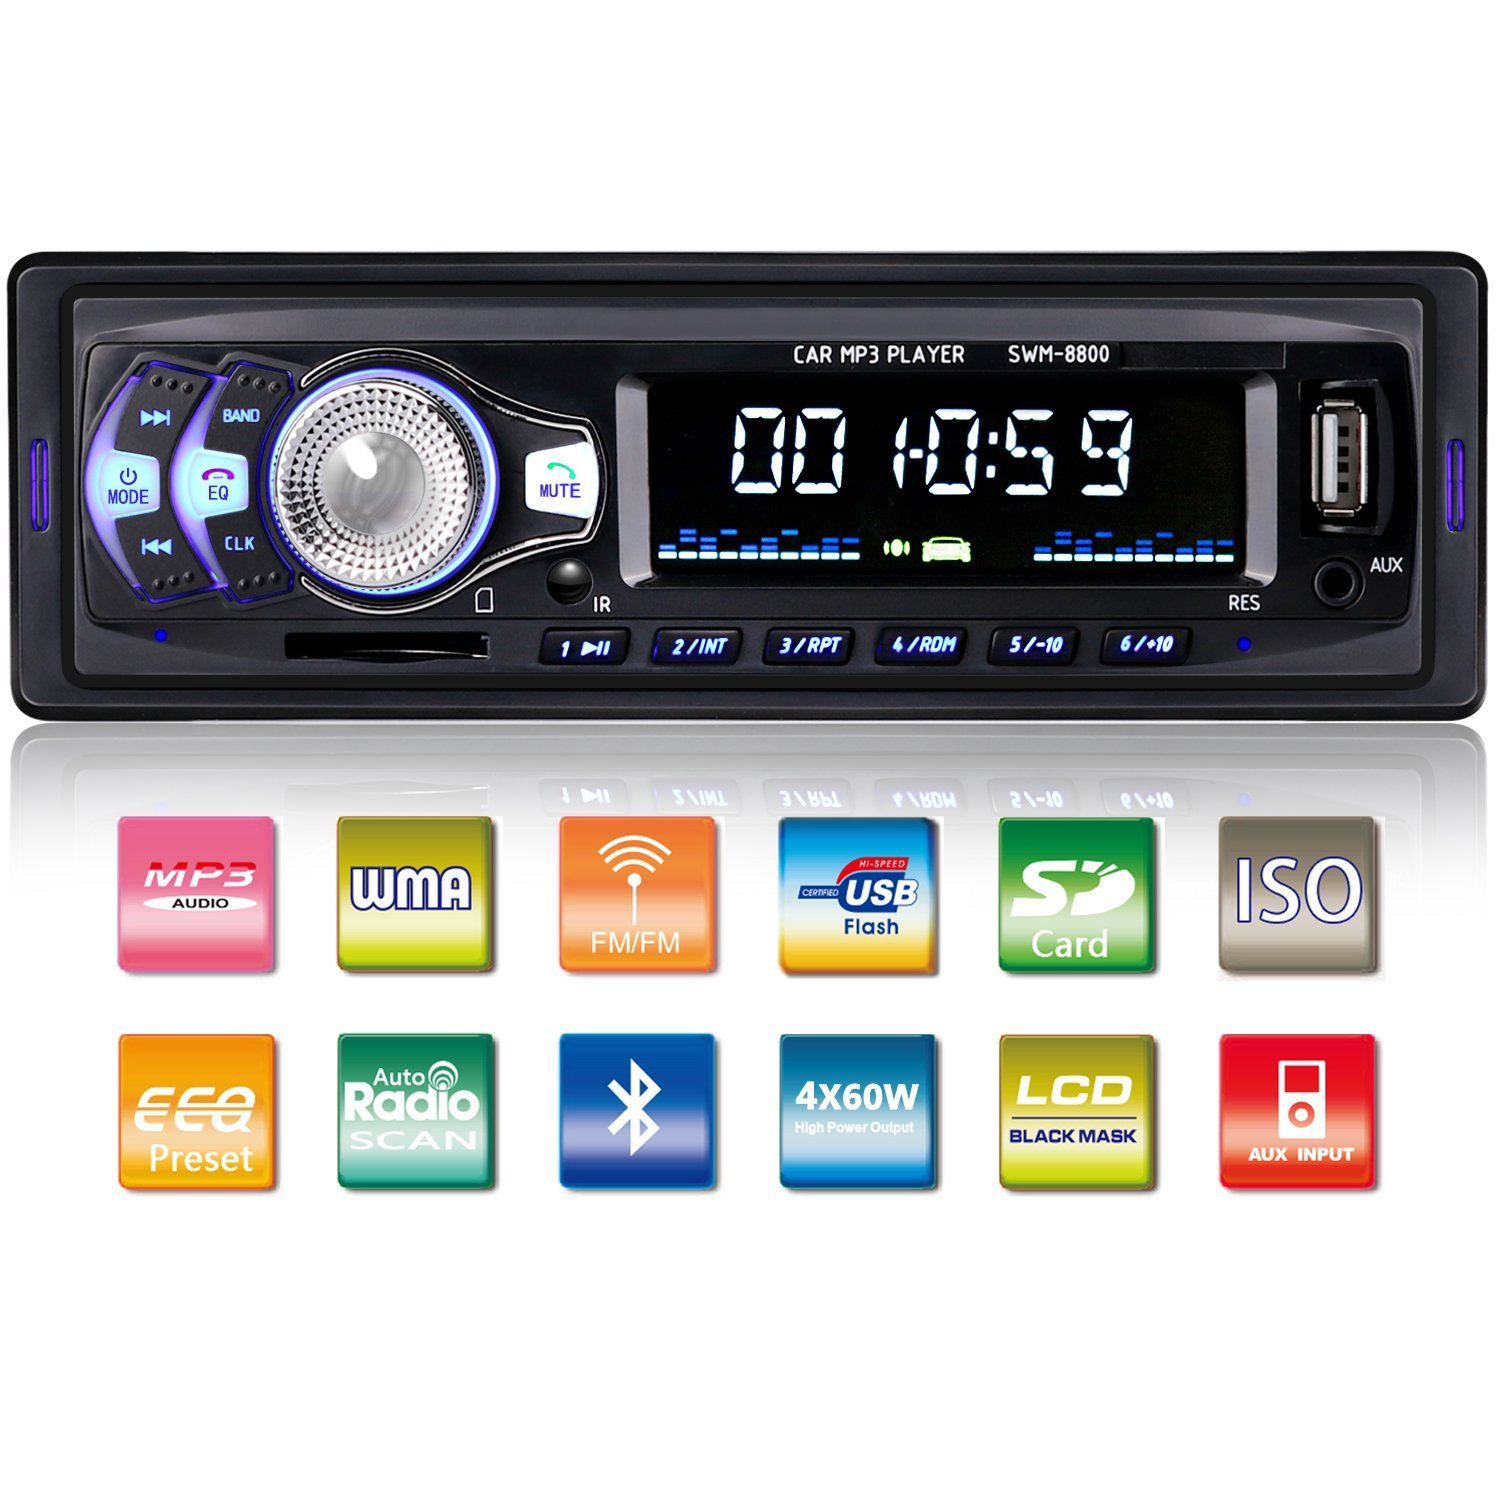 Jvc Kd S37 Car Stereo Wiring Diagram Diagrams Schematics Usb Speaker Cd Receiver With Front Aux In Walmart Com Tagital Bluetooth Dash Single Din Ca